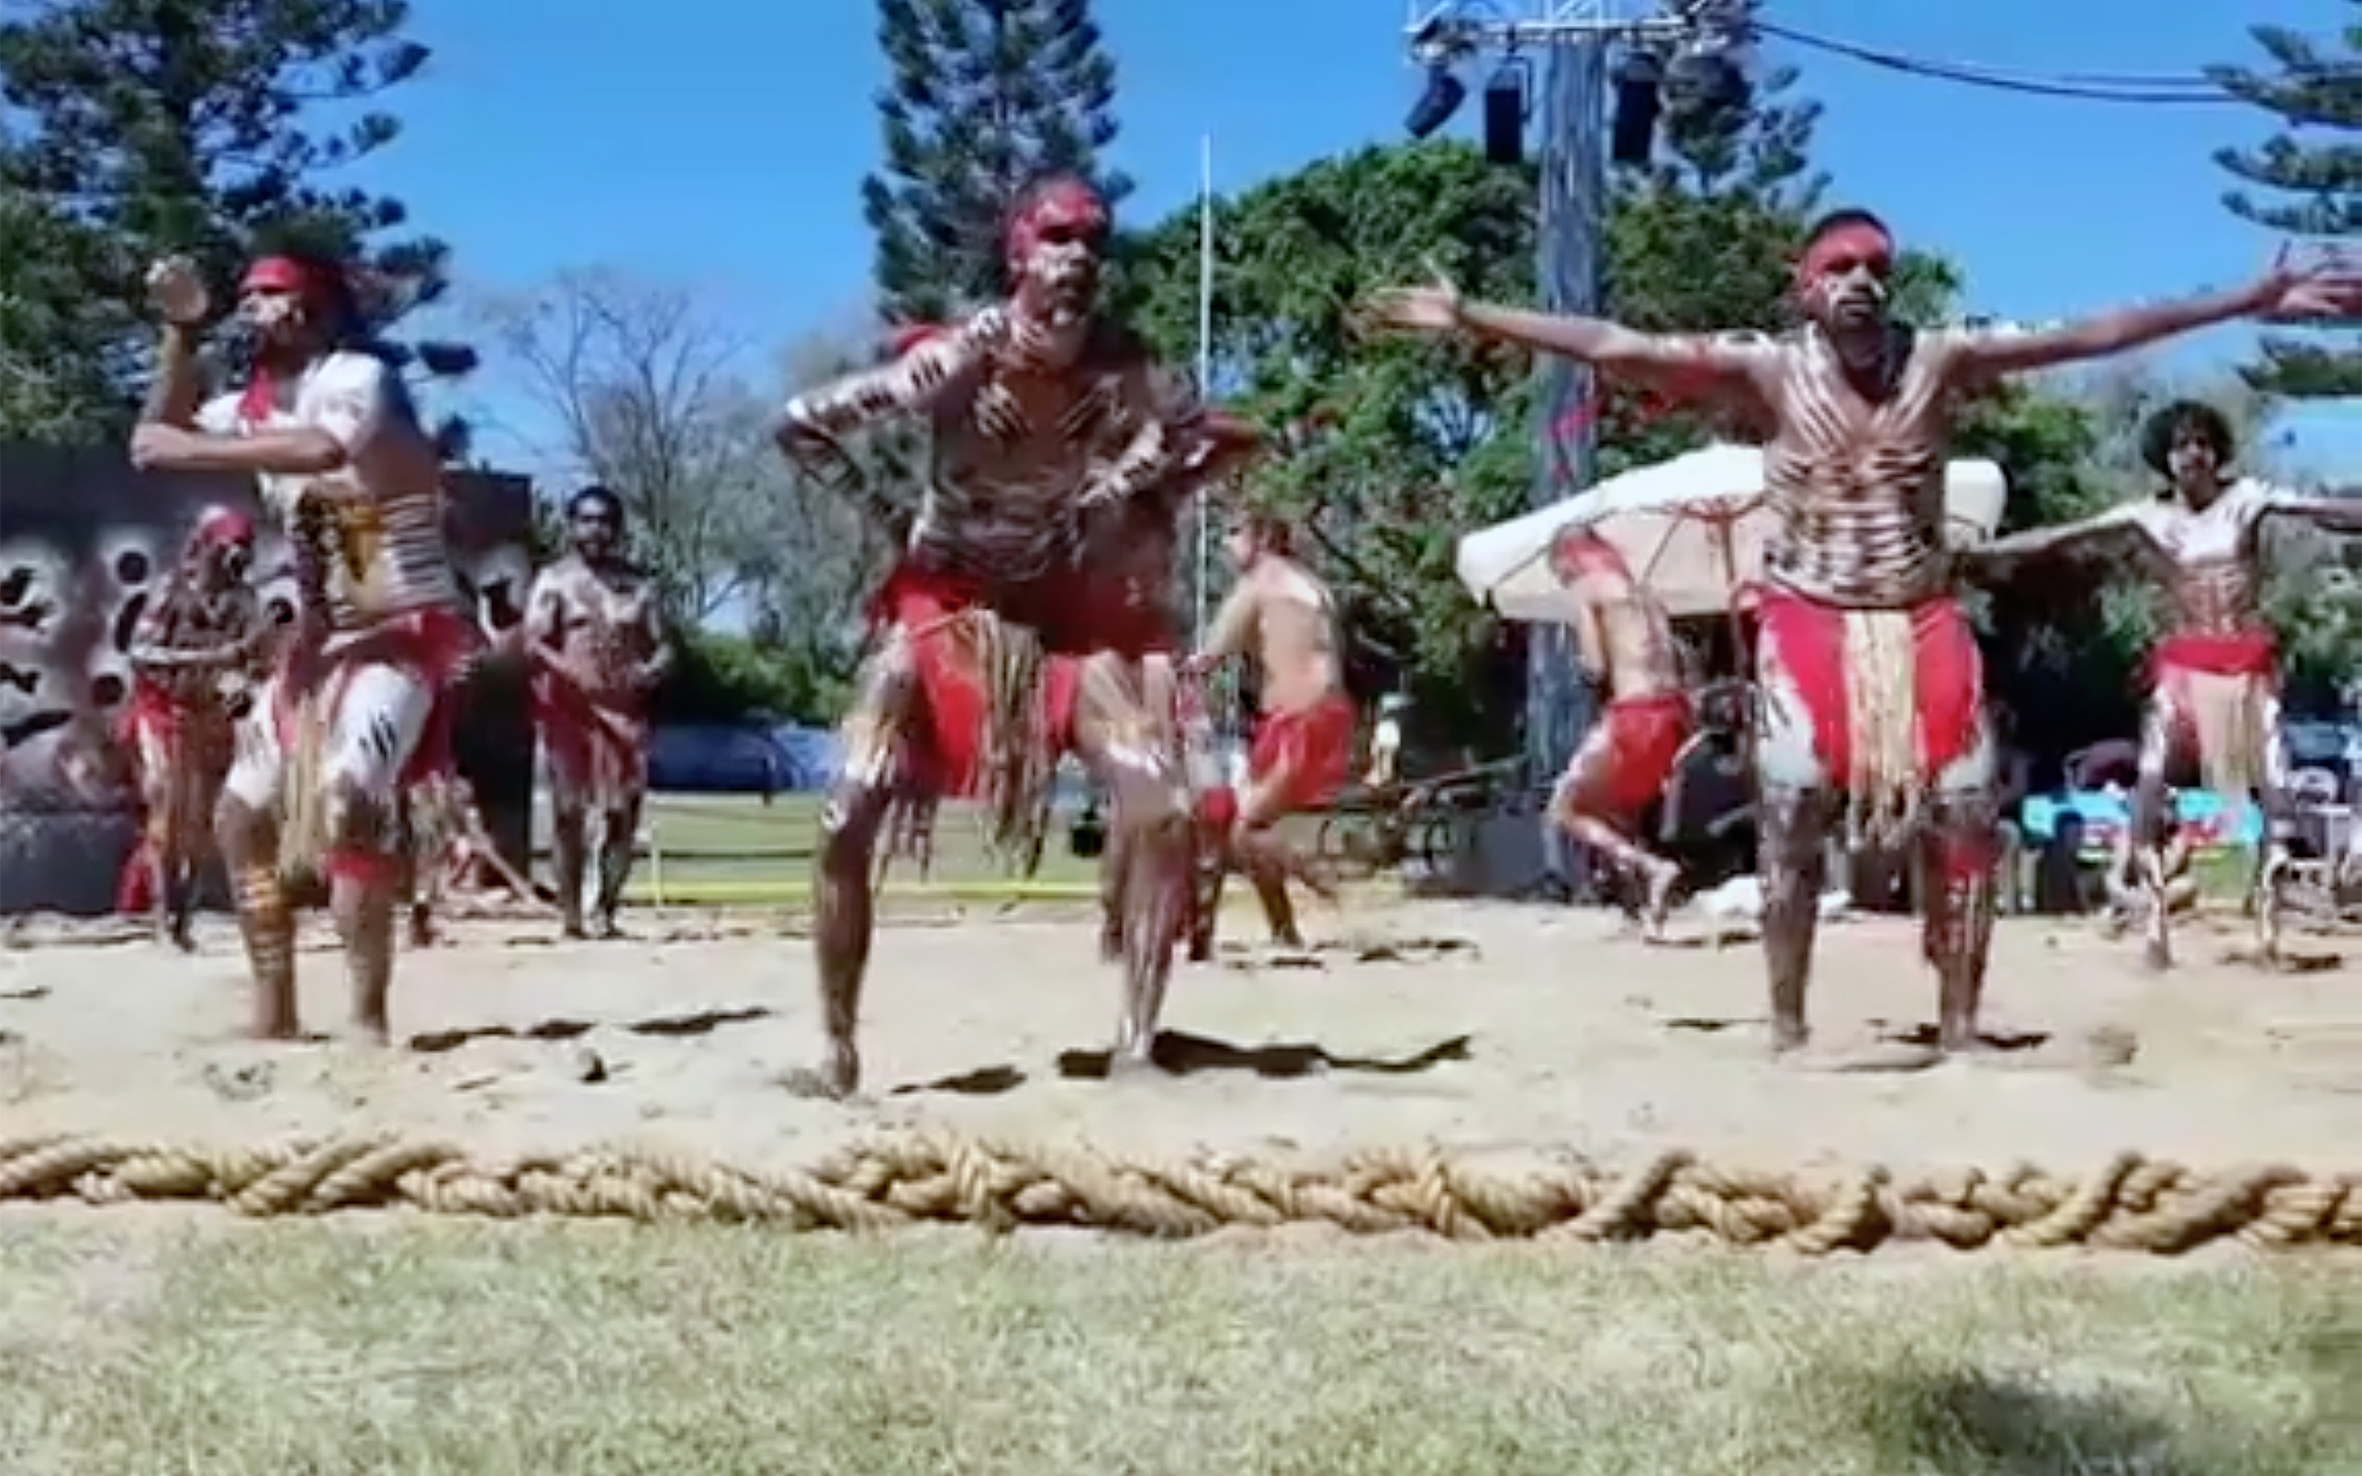 """2.Aboriginal Traditional Dance / Australia / Papua New Guinea - Aboriginal Traditional Dance is closely associated with songs and it used to be experienced as making present the reality of the Dreamtime. Some groups held their dances secret or sacred. Dancers would imitate the actions of a particular animal in the process of telling a story. In some ceremonies men and women would have separate ceremonial traditions. Dancing styles varied among hundreds of tribes. Dancing was done with set arm, body and foot movements with a lot of foot stamping. The best dancers and singers were highly respected. Serious ritual or sacred dancing was quite distinct from light hearted camp dancing that men, women and children could share. The term """"corroboree"""" is commonly used to refer to Australian Aboriginal dances, however it comes from the people of the Sydney region. In some places, Australian Aboriginal people perform corroborees for tourists."""